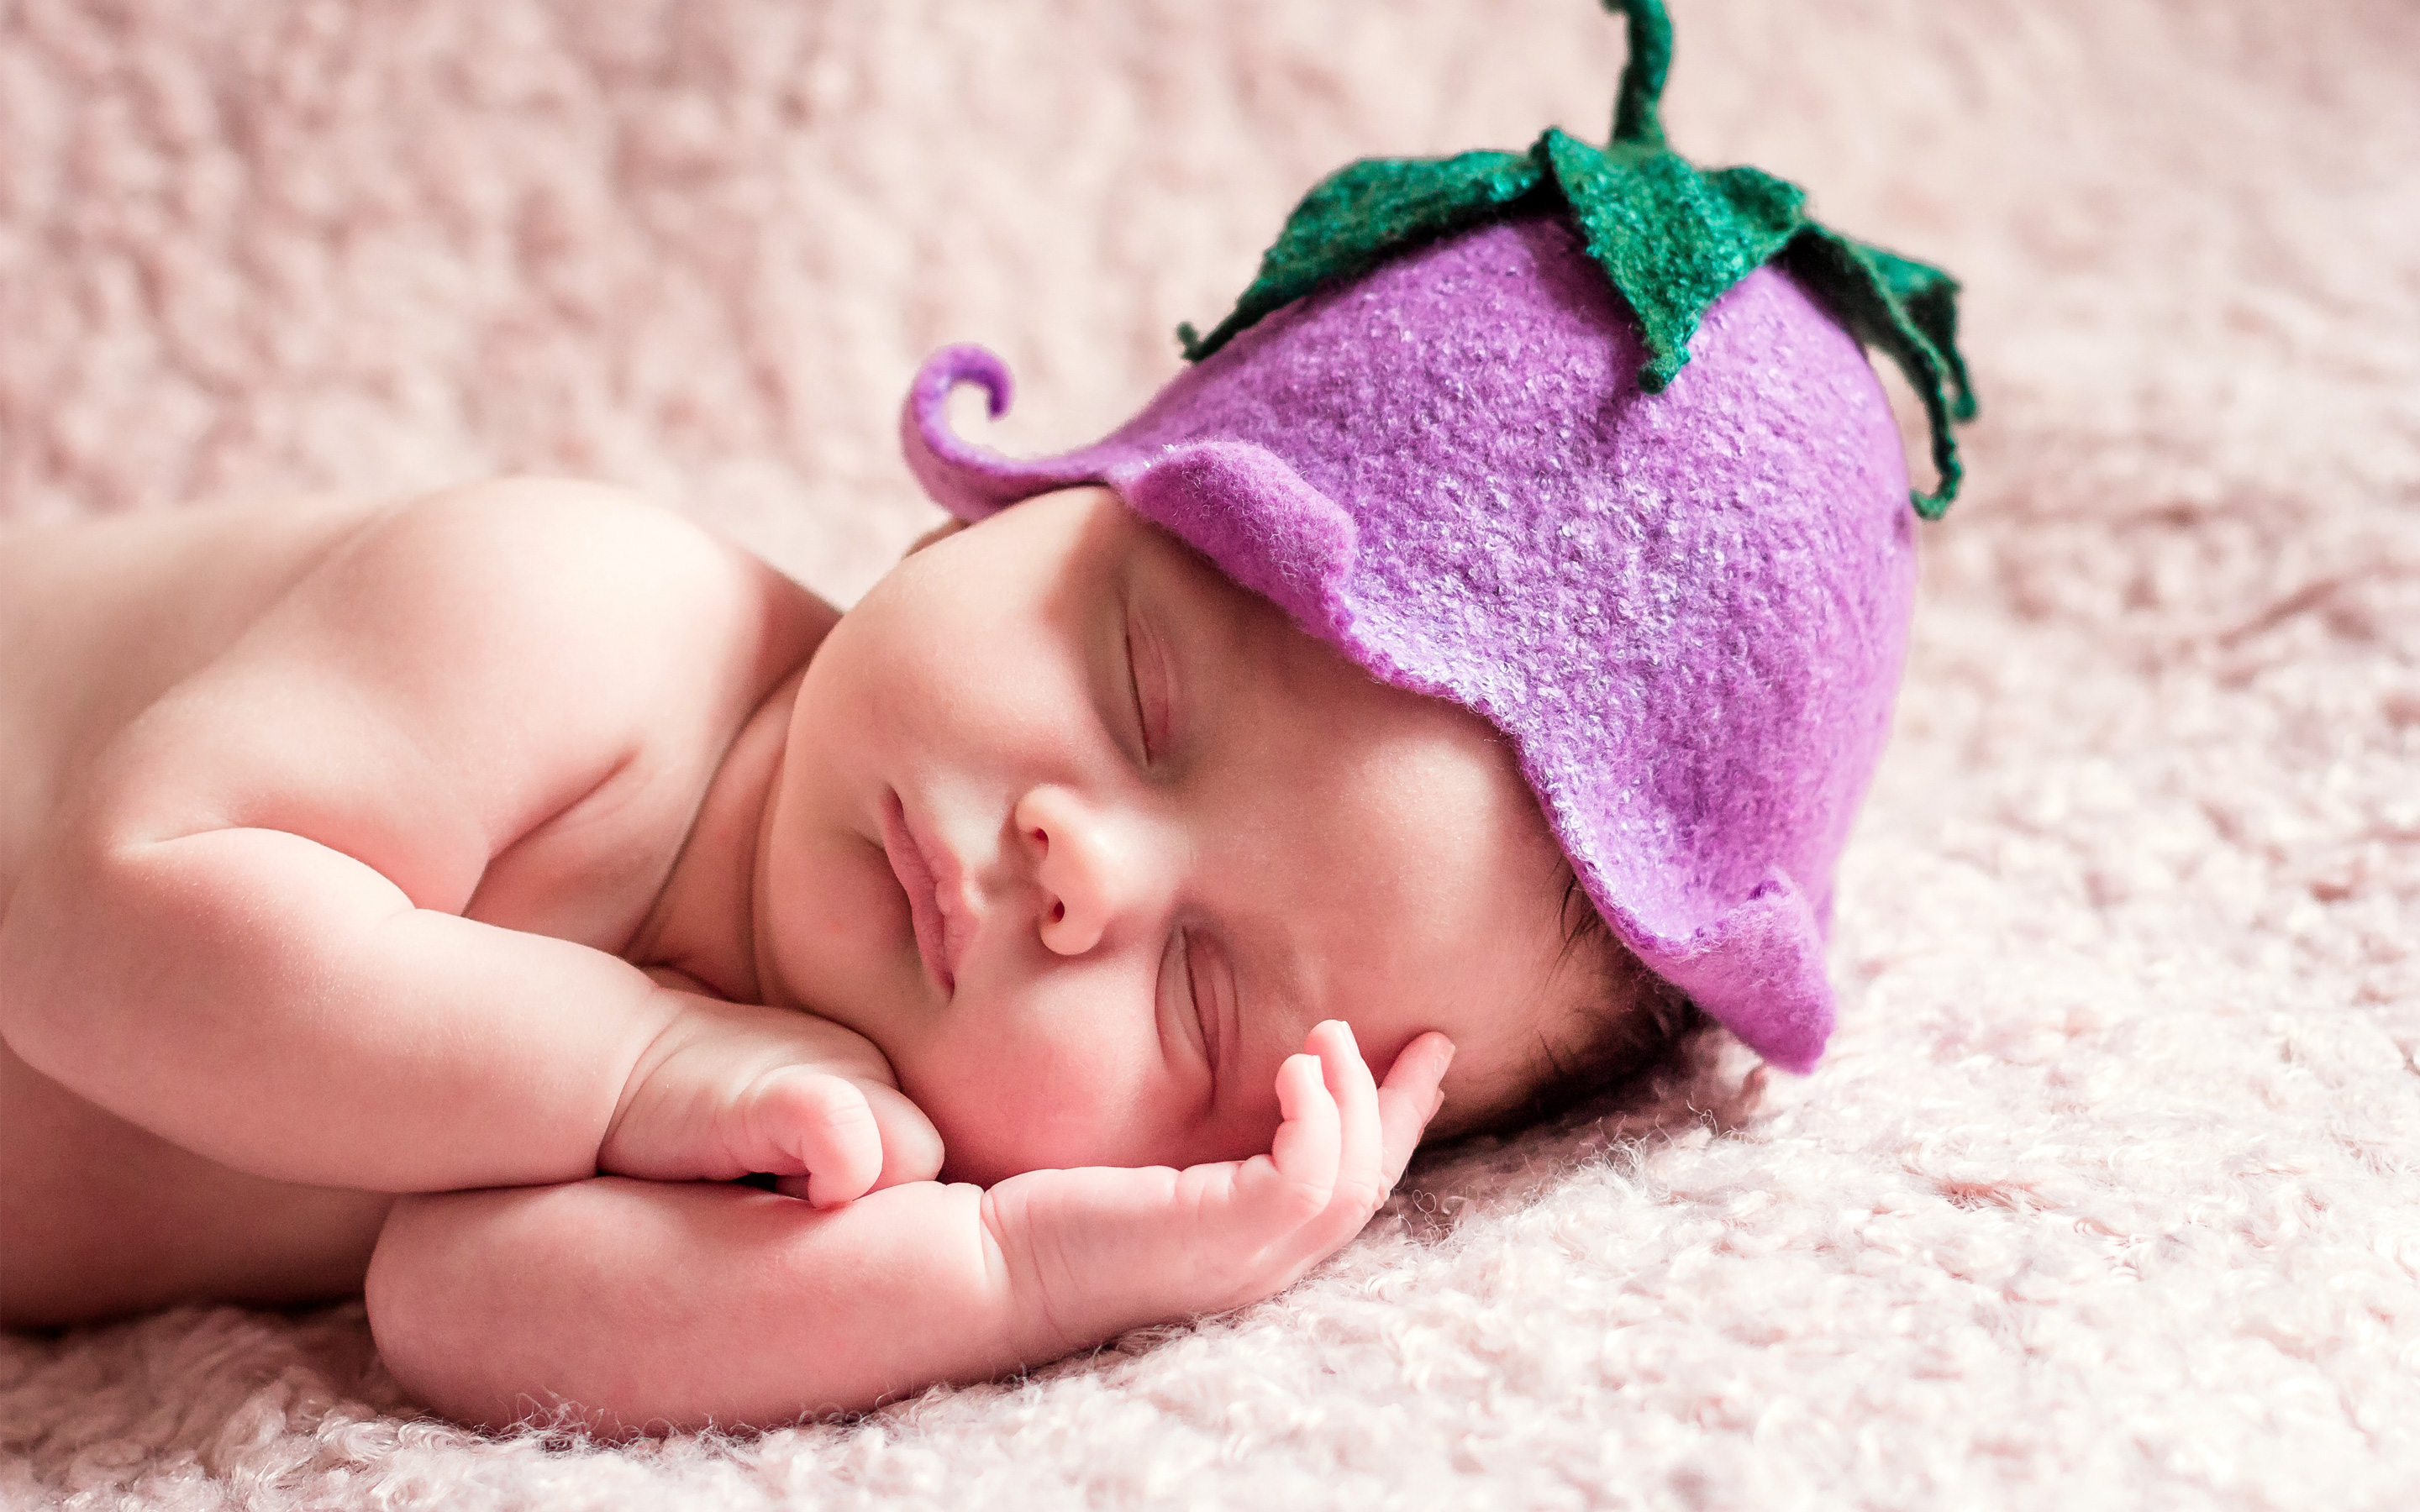 Cute Sleeping Newborn Baby9353017857 - Cute Sleeping Newborn Baby - Sleeping, NewBorn, Eyes, Cute, Baby